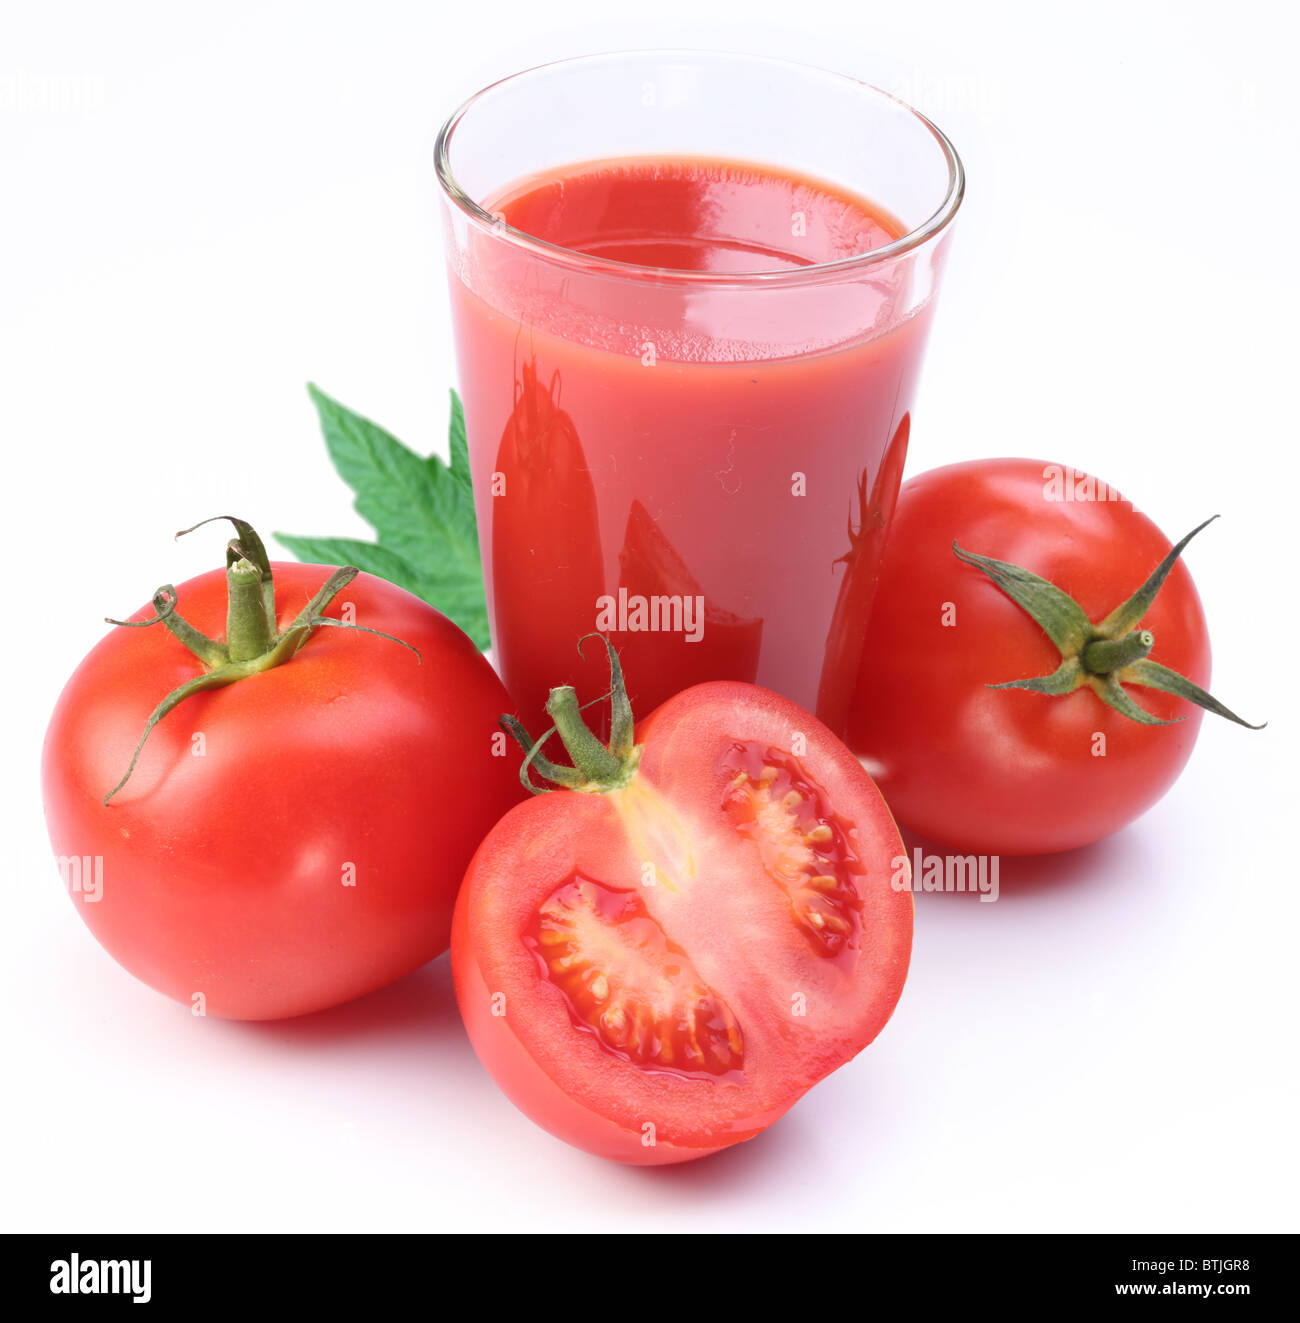 Full glass of fresh tomato juice and tomatoes are round the galss. - Stock Image